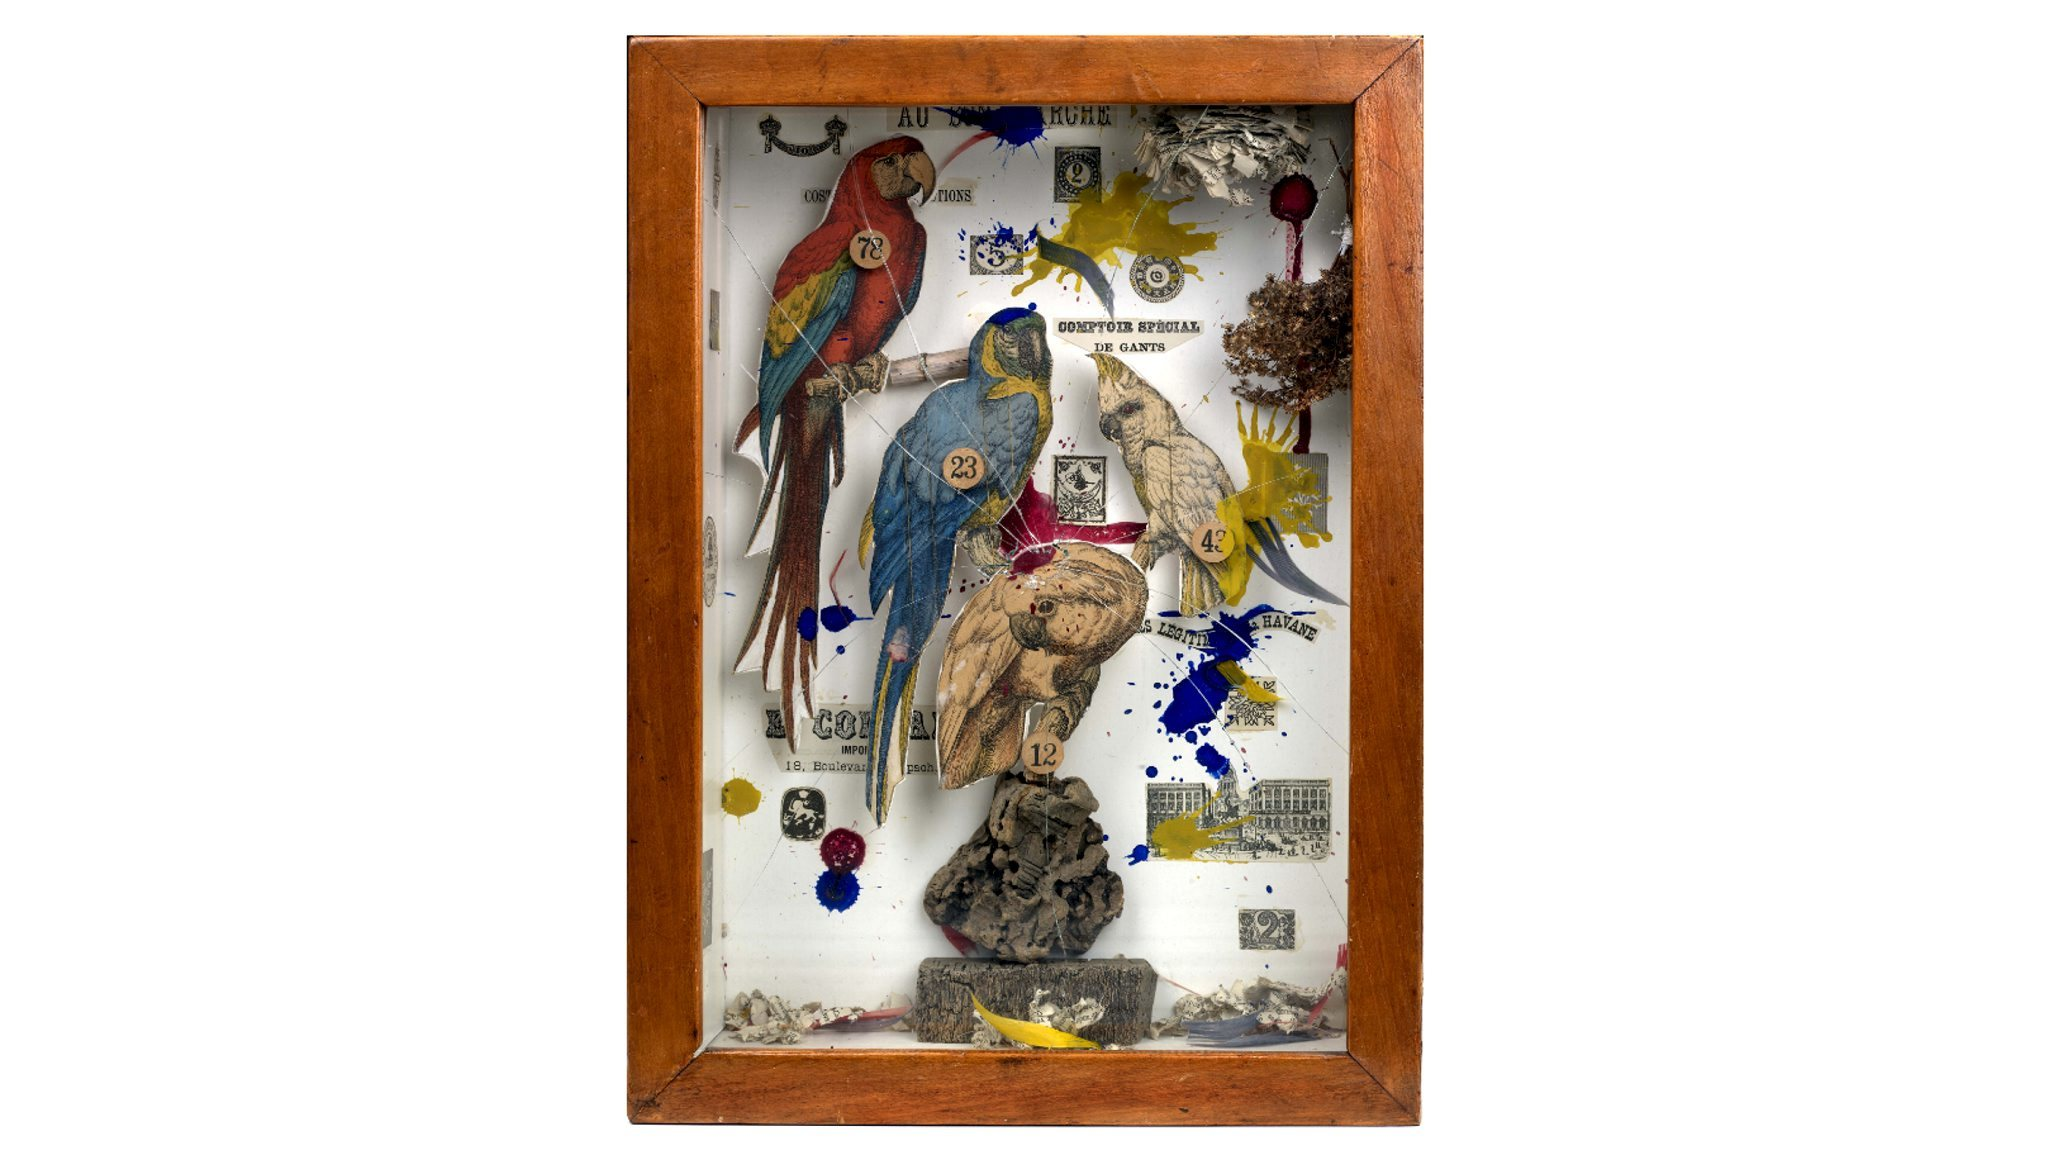 'Joseph Cornell: Wanderlust' at Royal Academy of Arts: a preview